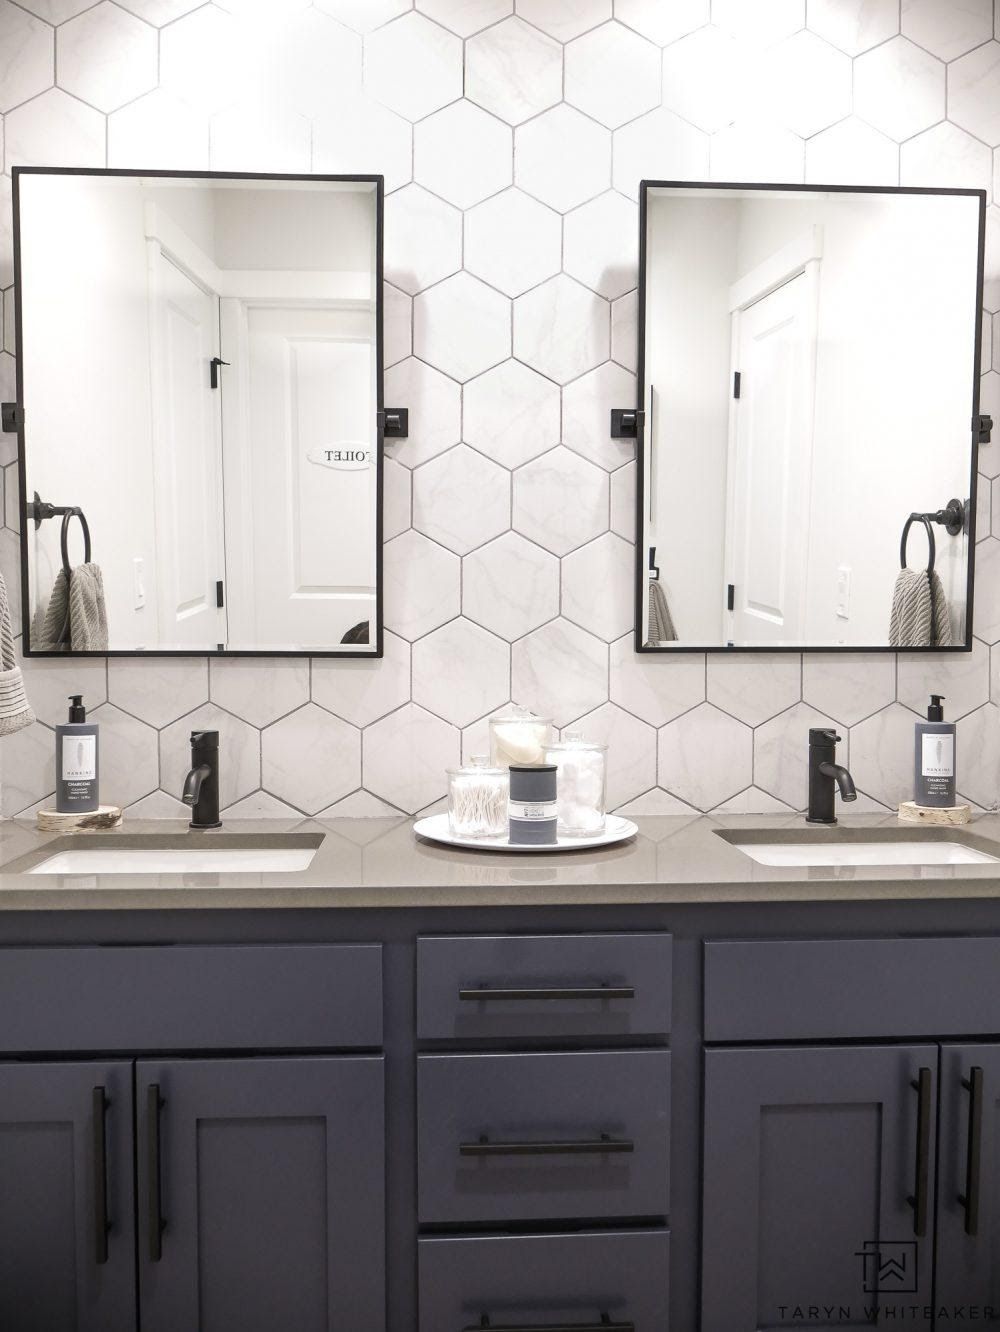 10. Double sink bathroom vanity makeover by simphome.com